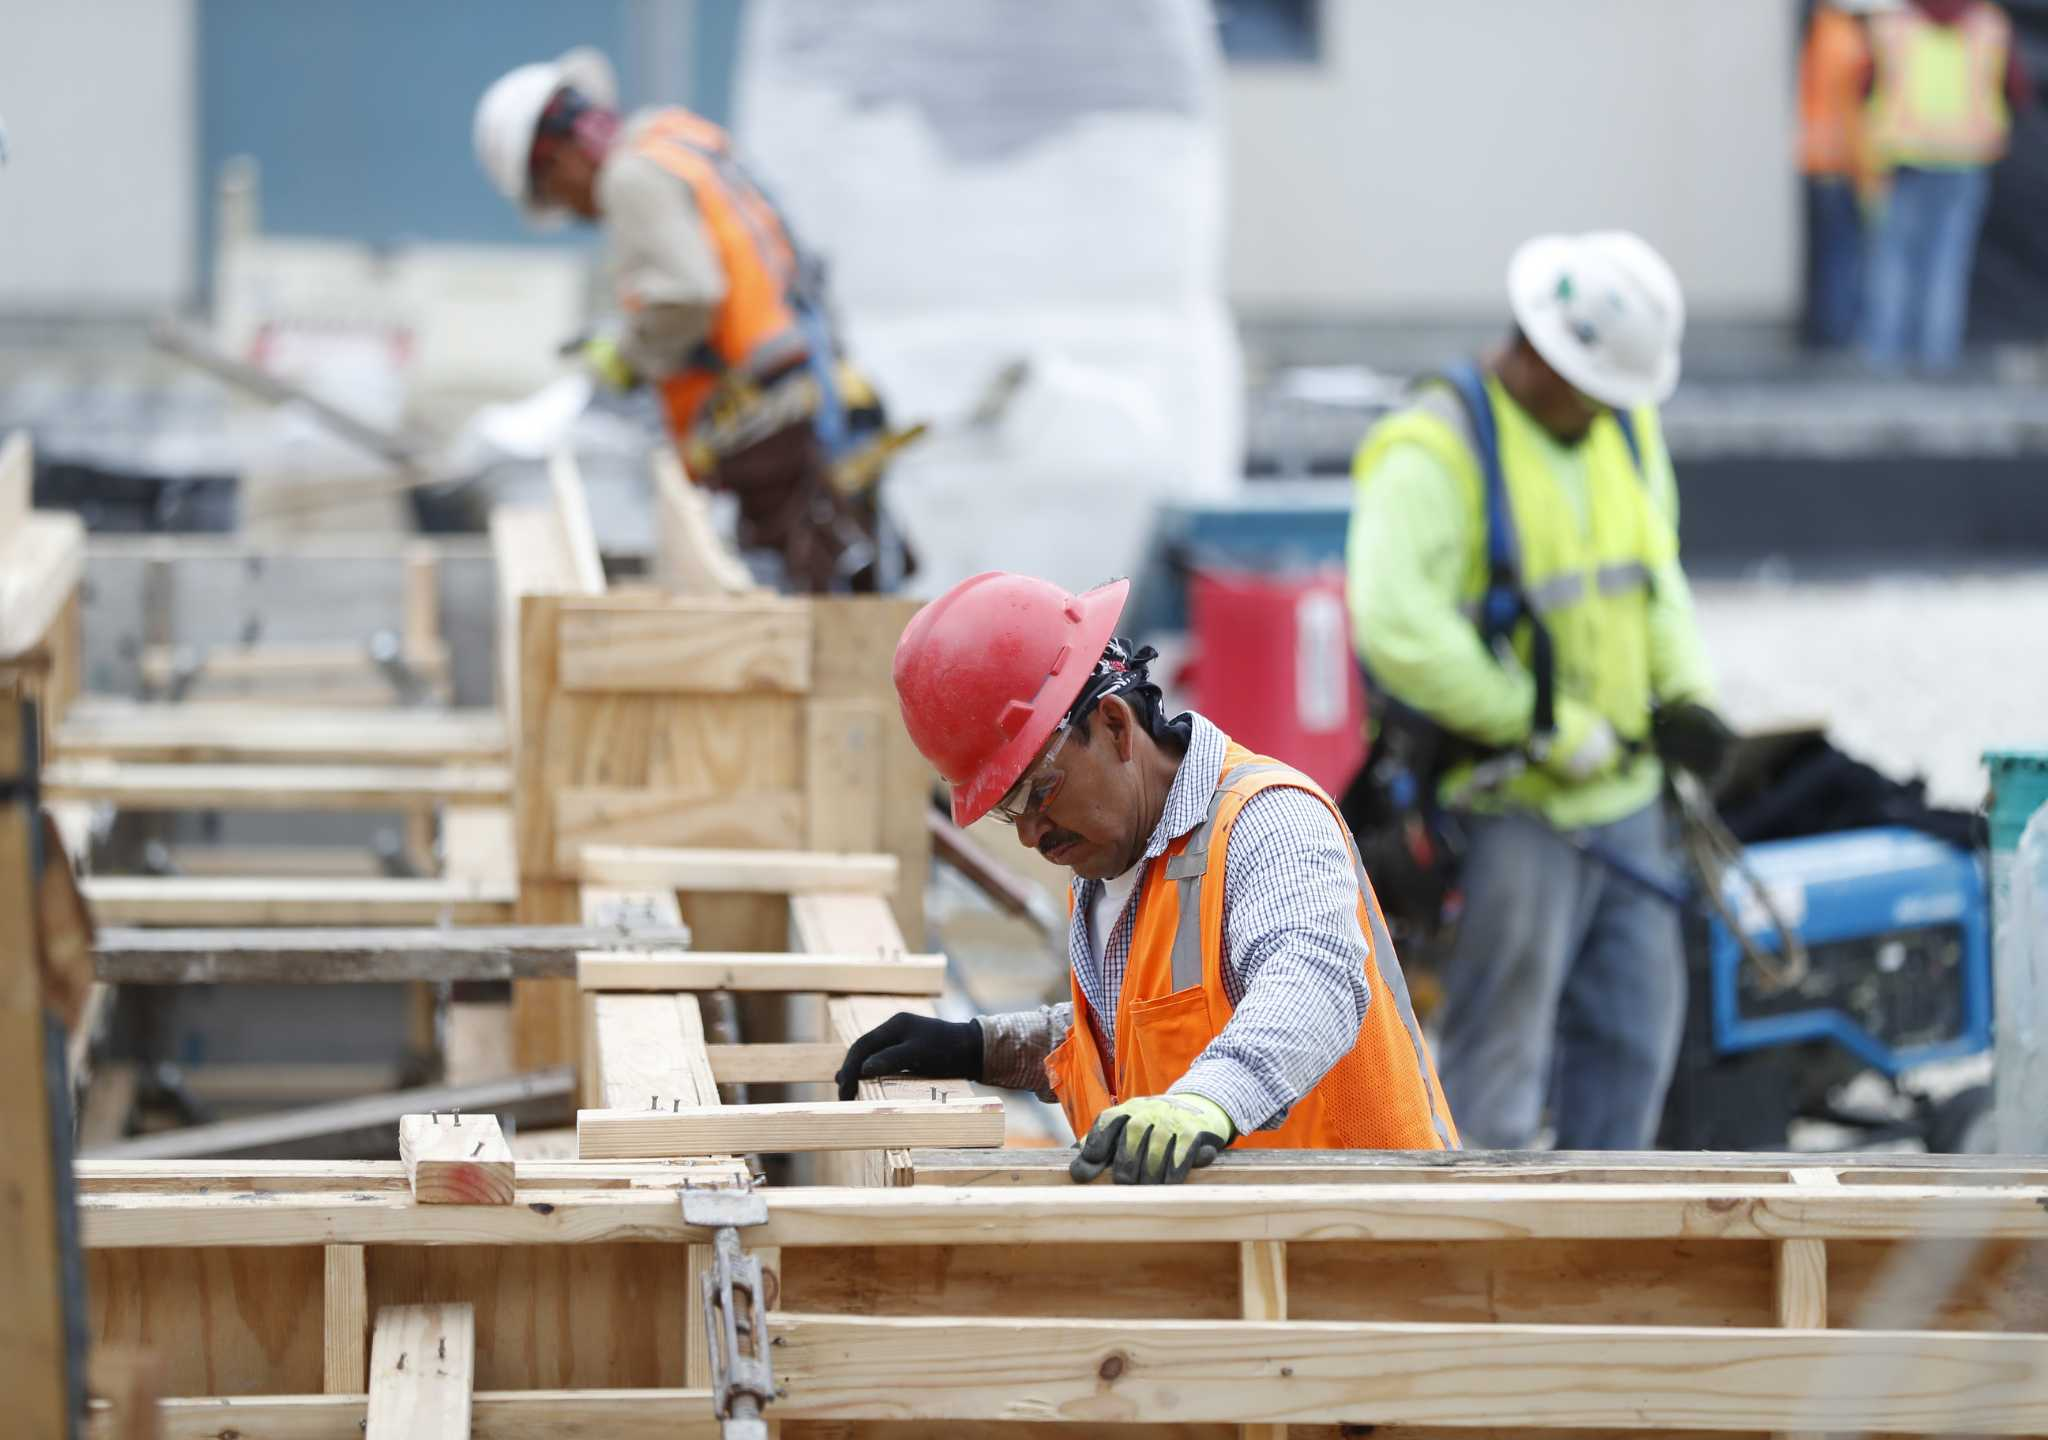 labour shortage in construction industry As the residential construction industry continues to grapple with a severe labor shortage, one solution is clear to many industry leaders: recruiting more women.